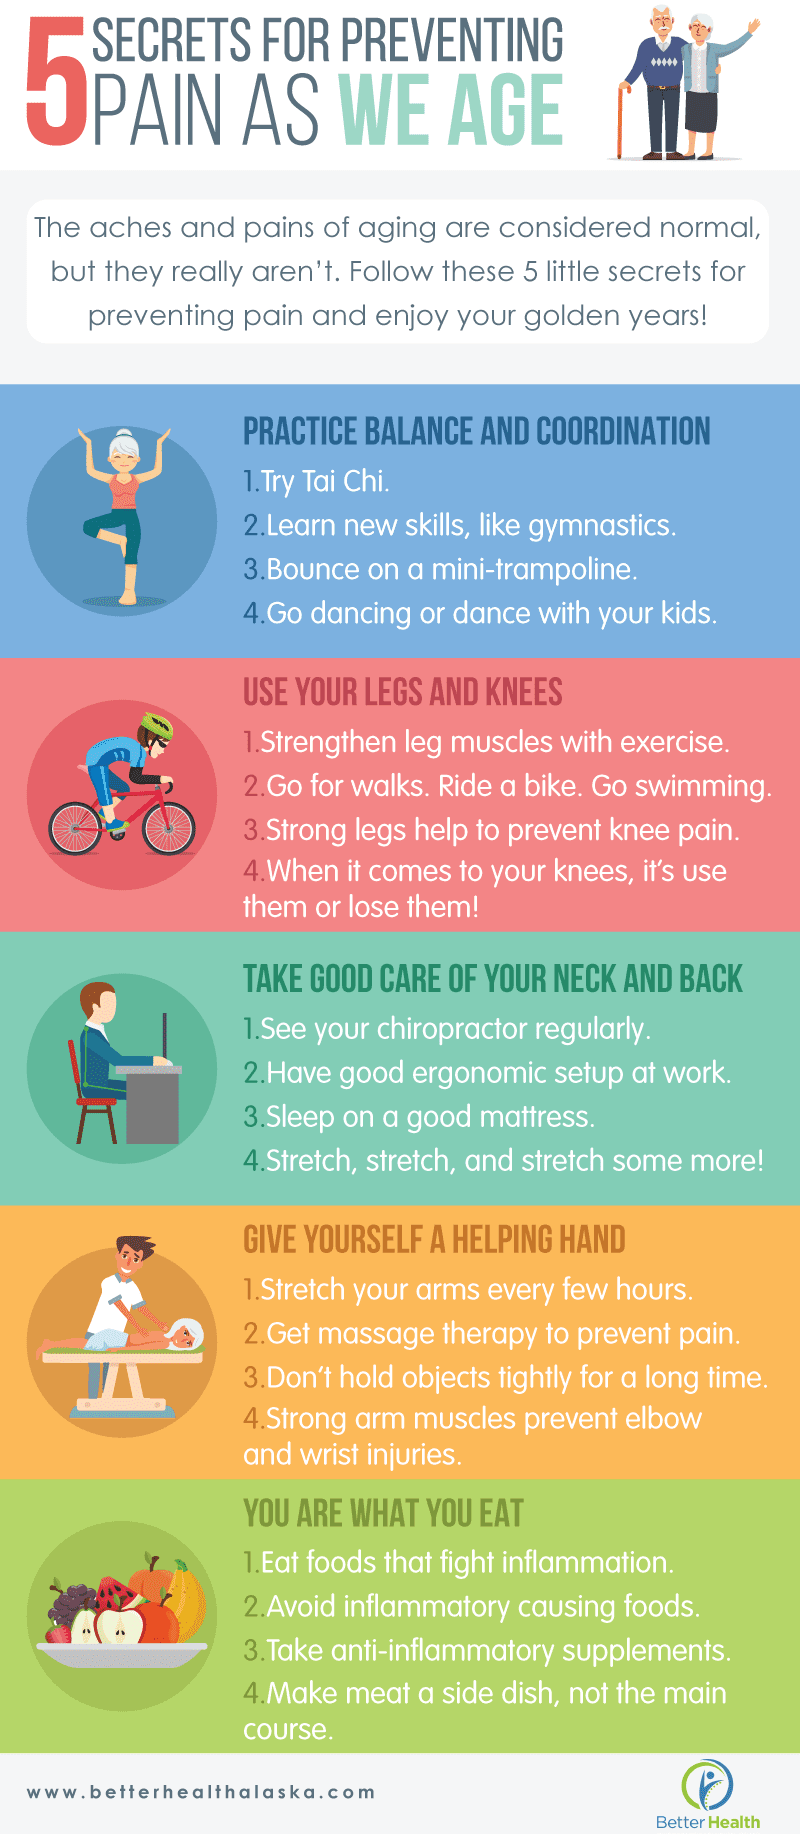 5 Secrets for Preventing Pain as We Age infographic